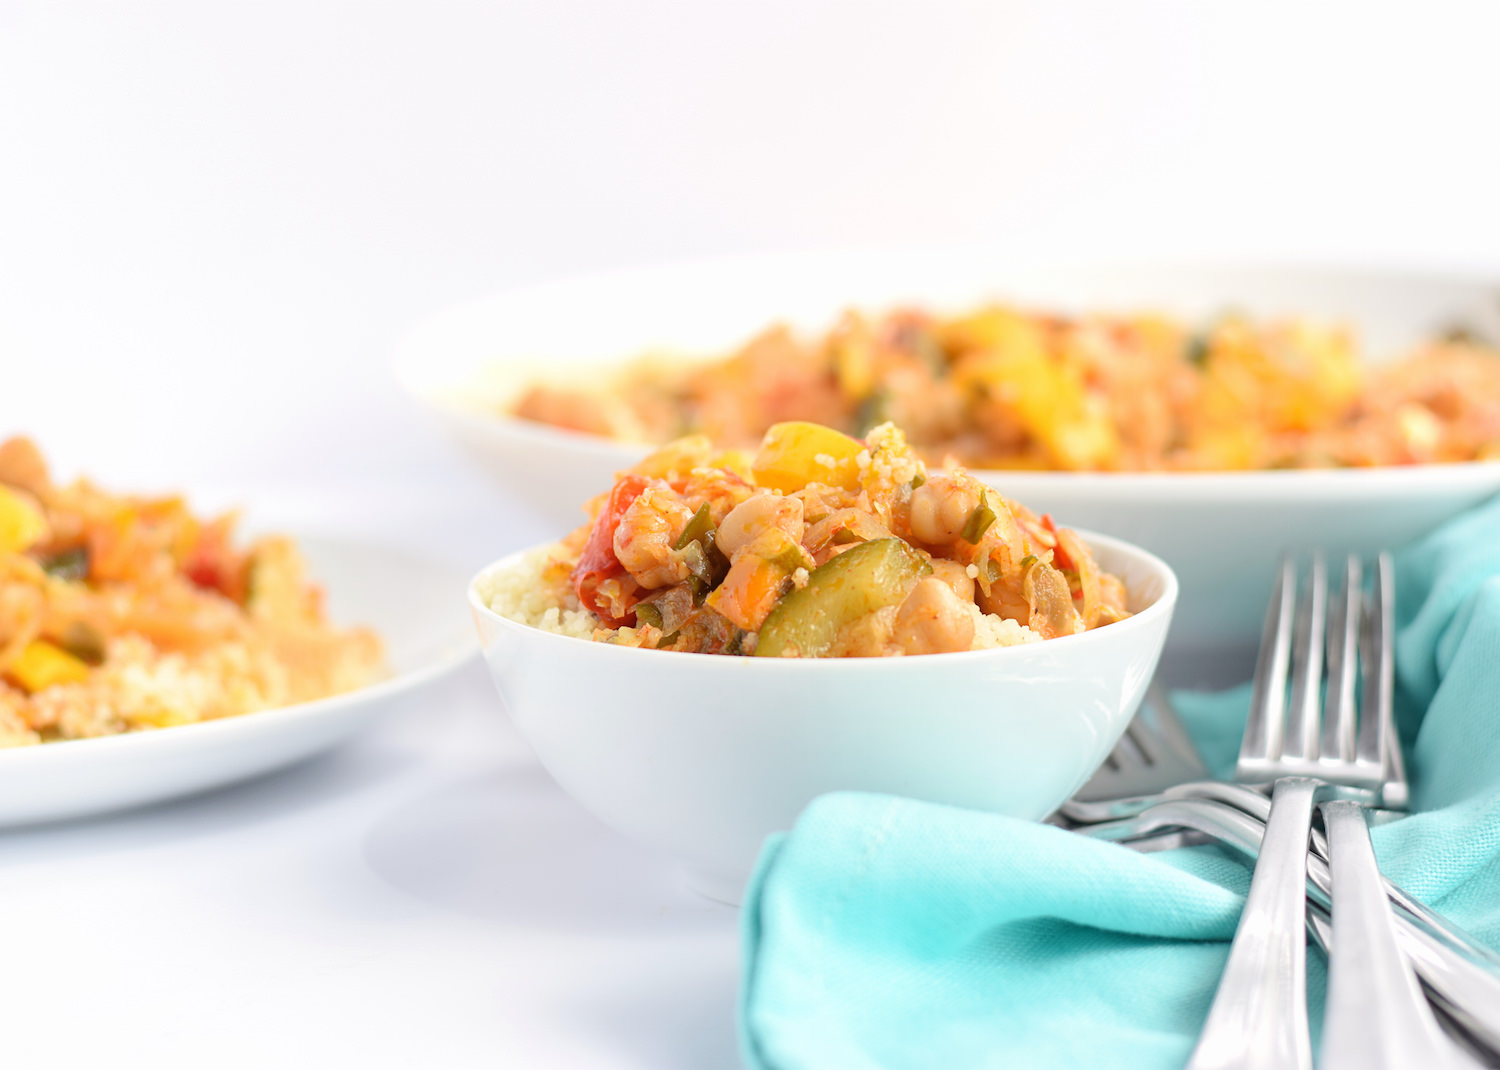 This Sautéed Chickpea and Vegetable Couscous is packed with flavor and nutrients and makes the perfect lunch or dinner. So addictive! | trufflesandtrends.com